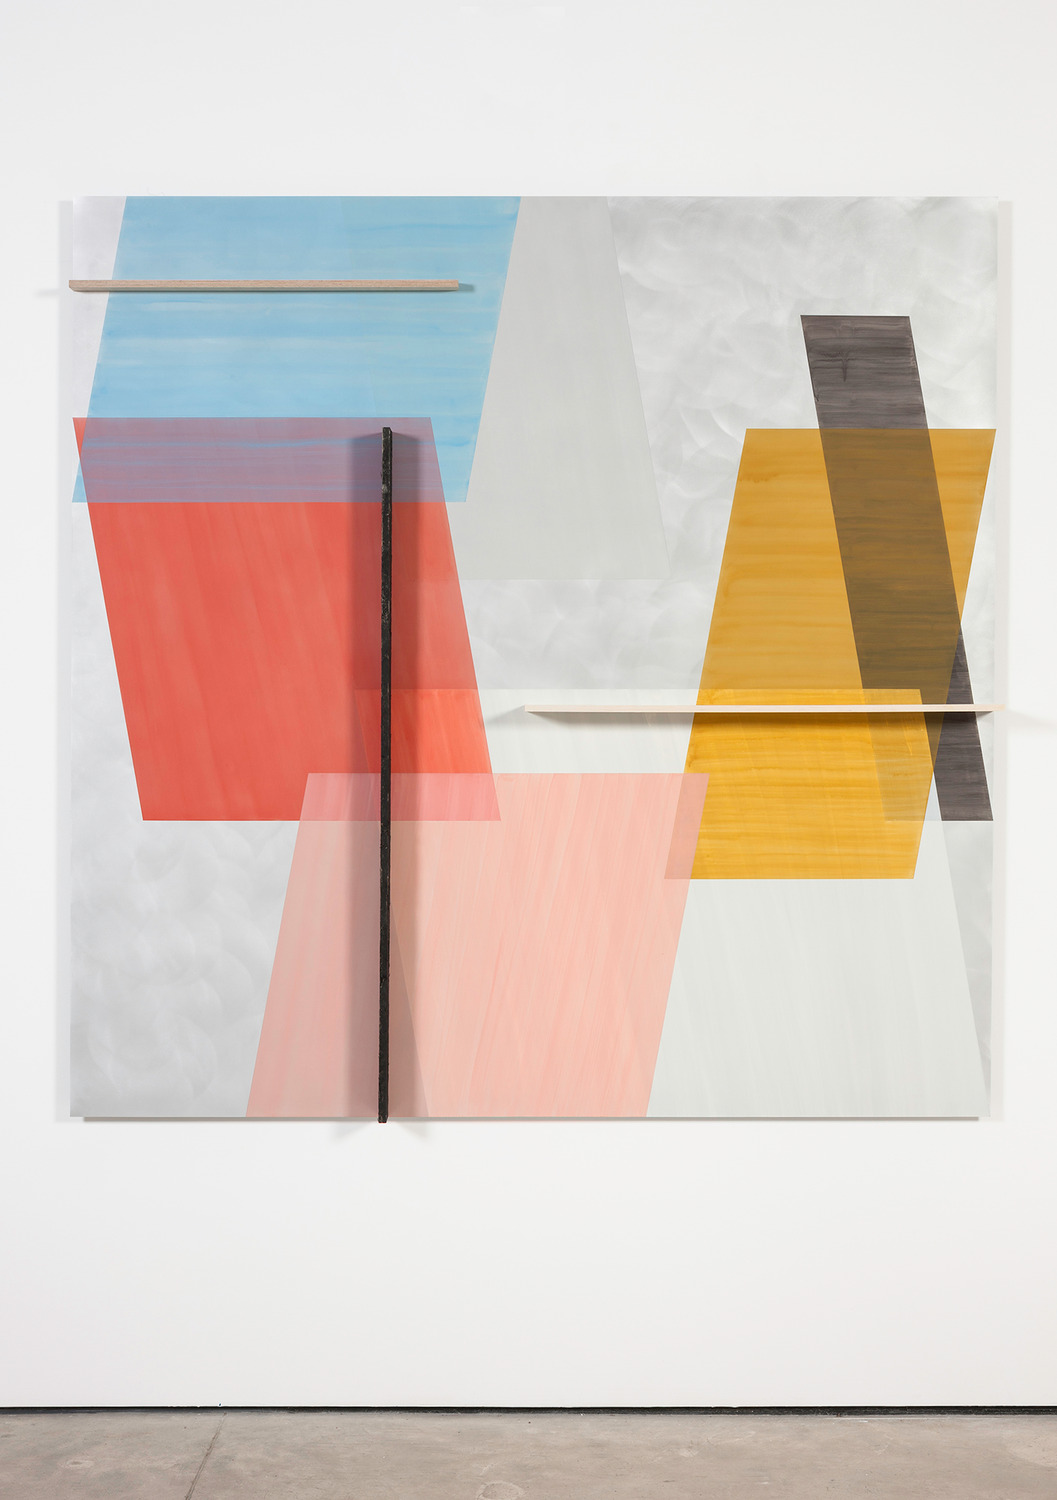 Ten Degrees, 2014, Acrylic, pencil and wood on aluminium, 180 x 180 x 3 cm